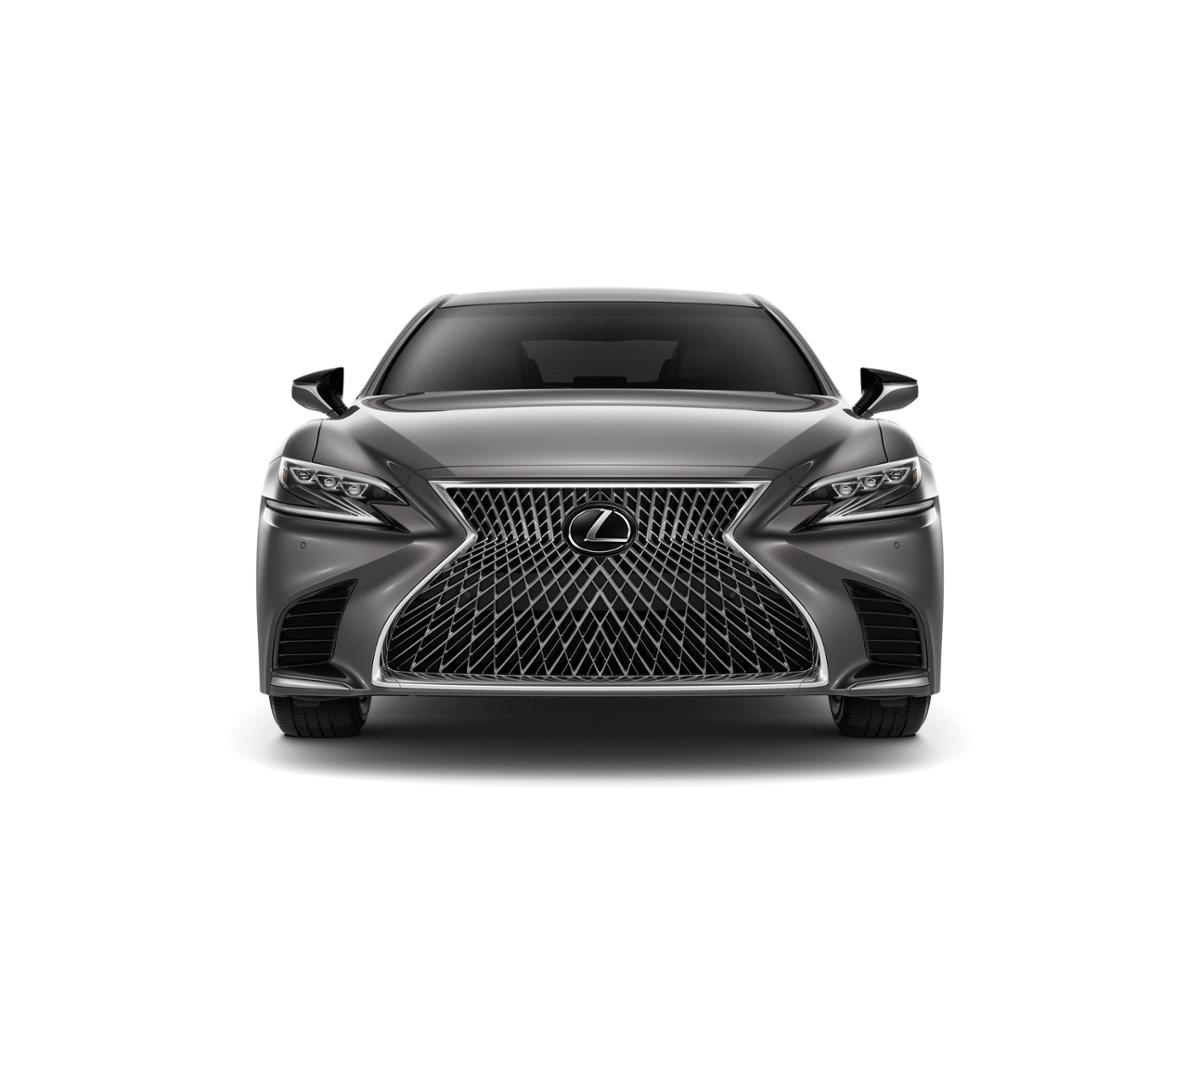 New 2019 Lexus LS 500 For Sale In Farmingdale, NY